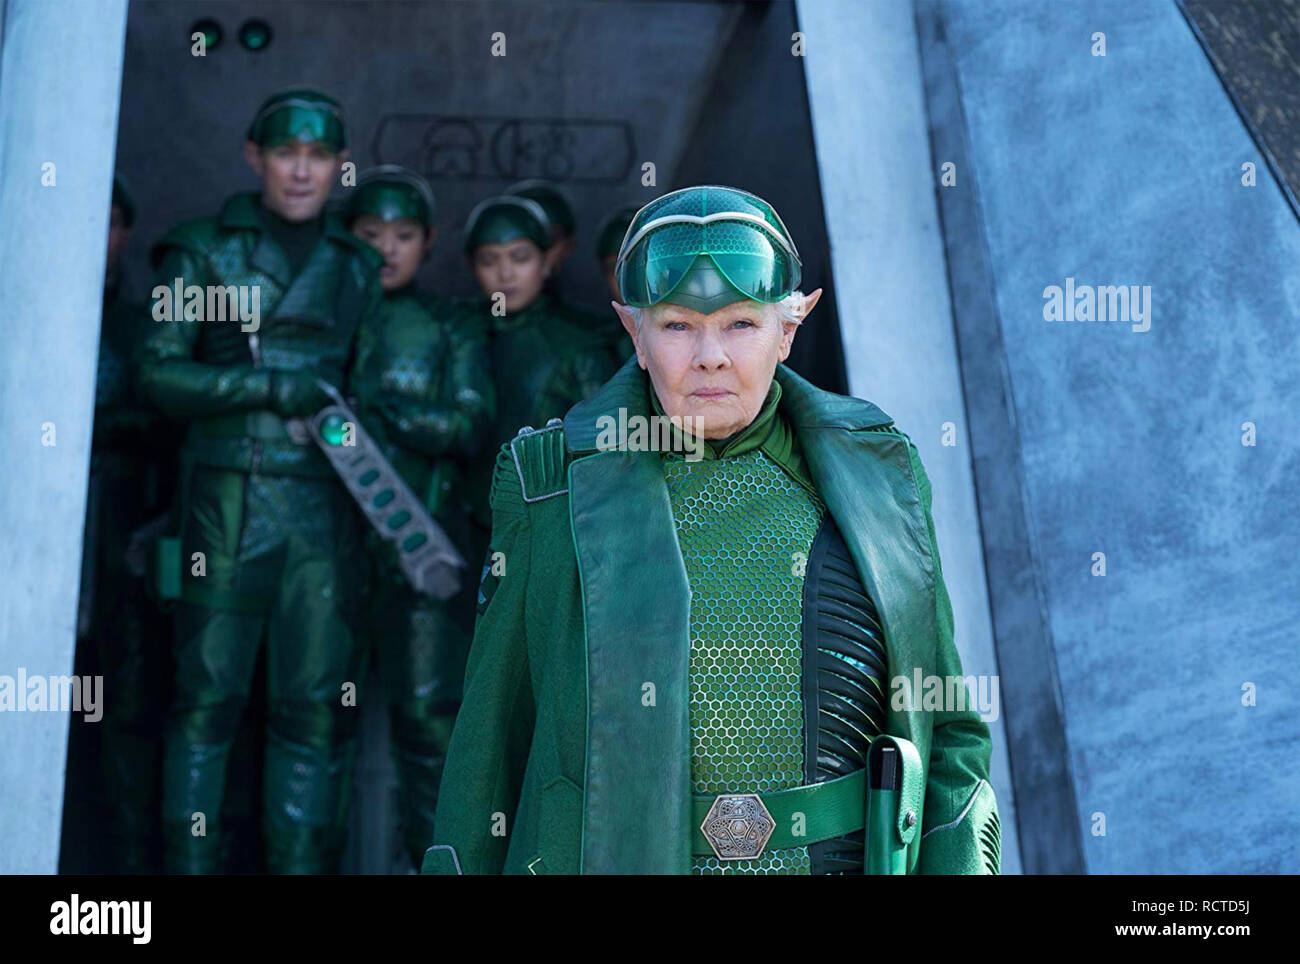 ARTEMIS FOWL 2019 Walt Disney Pictures film with Judy Dench as Commander Root - Stock Image